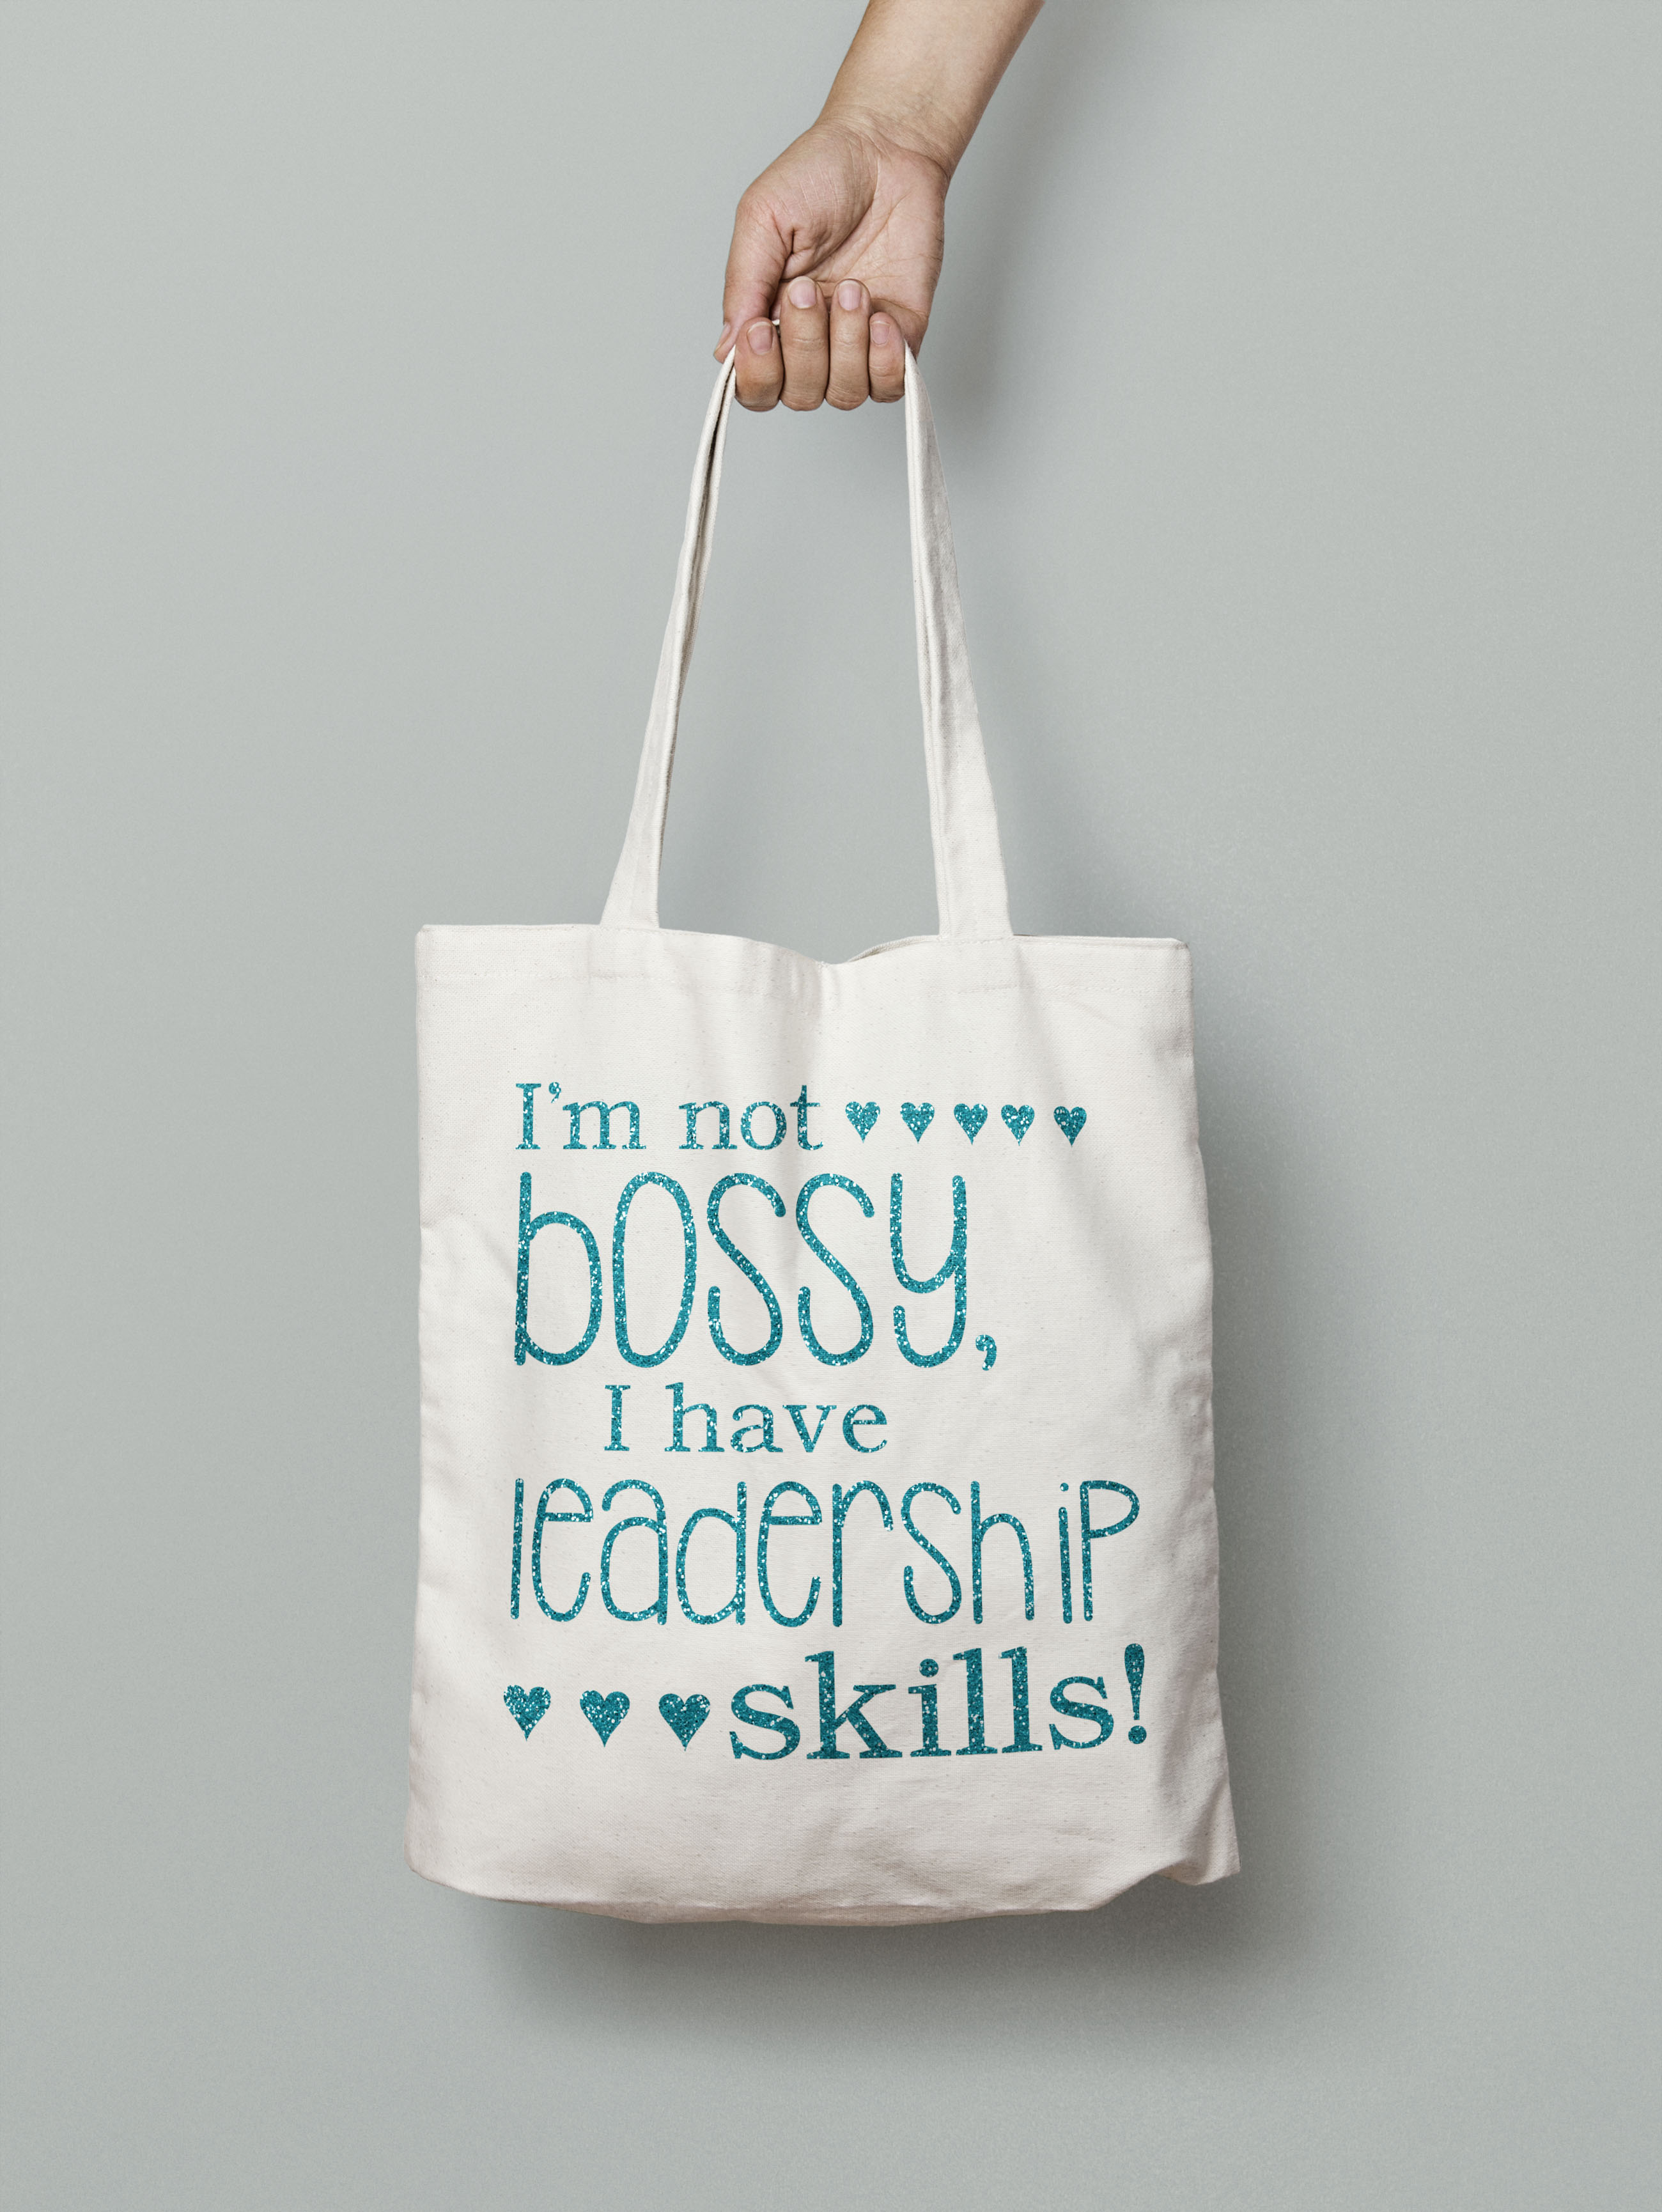 I'm not bossy, I have leadership skills. SVG sarcastic funny example image 3